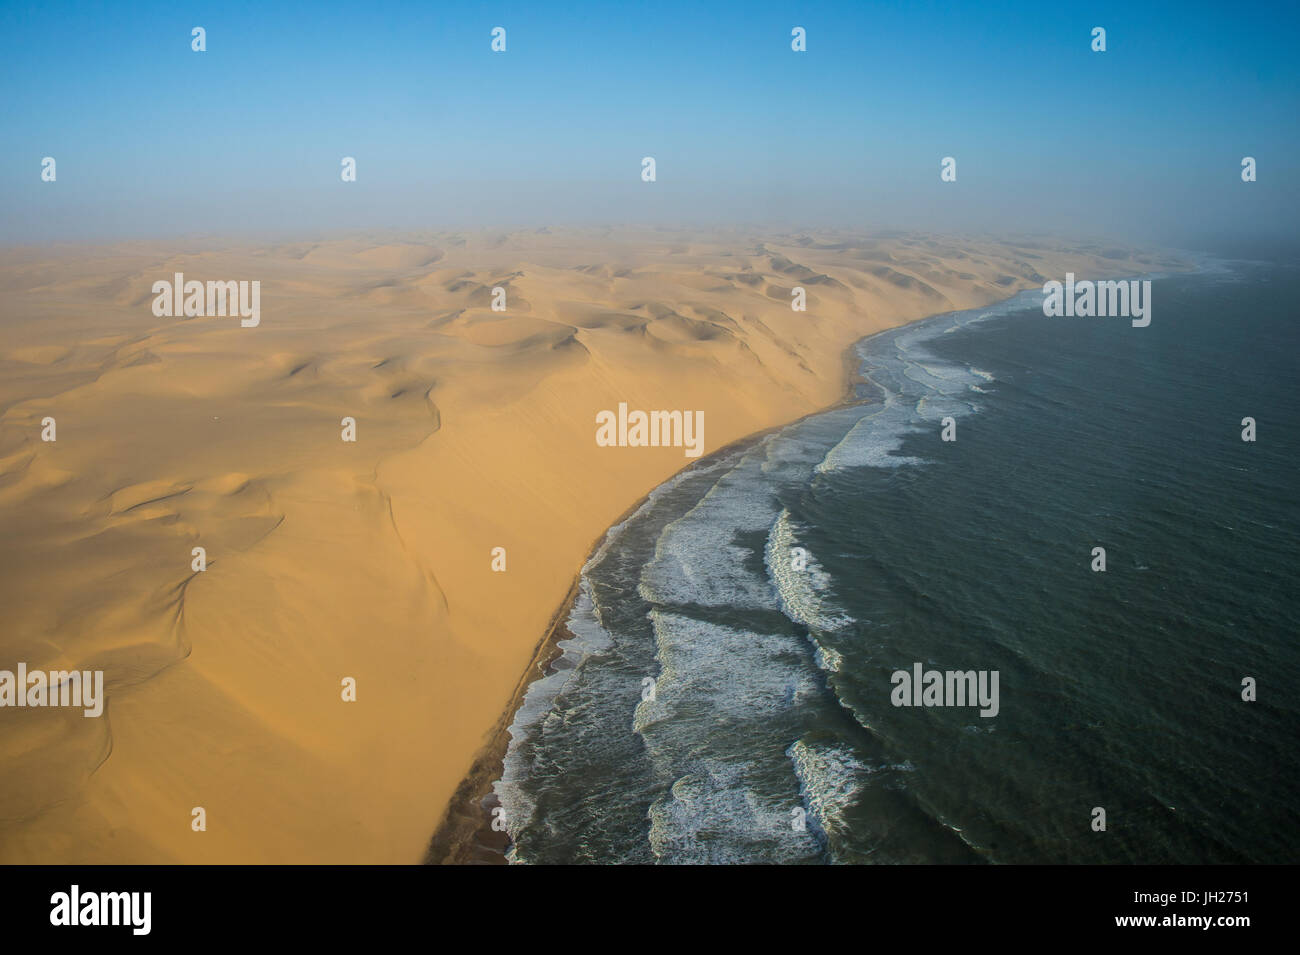 Aerials of sand dunes of the Namib Desert meeting the Atlantic Ocean, Namibia, Africa - Stock Image